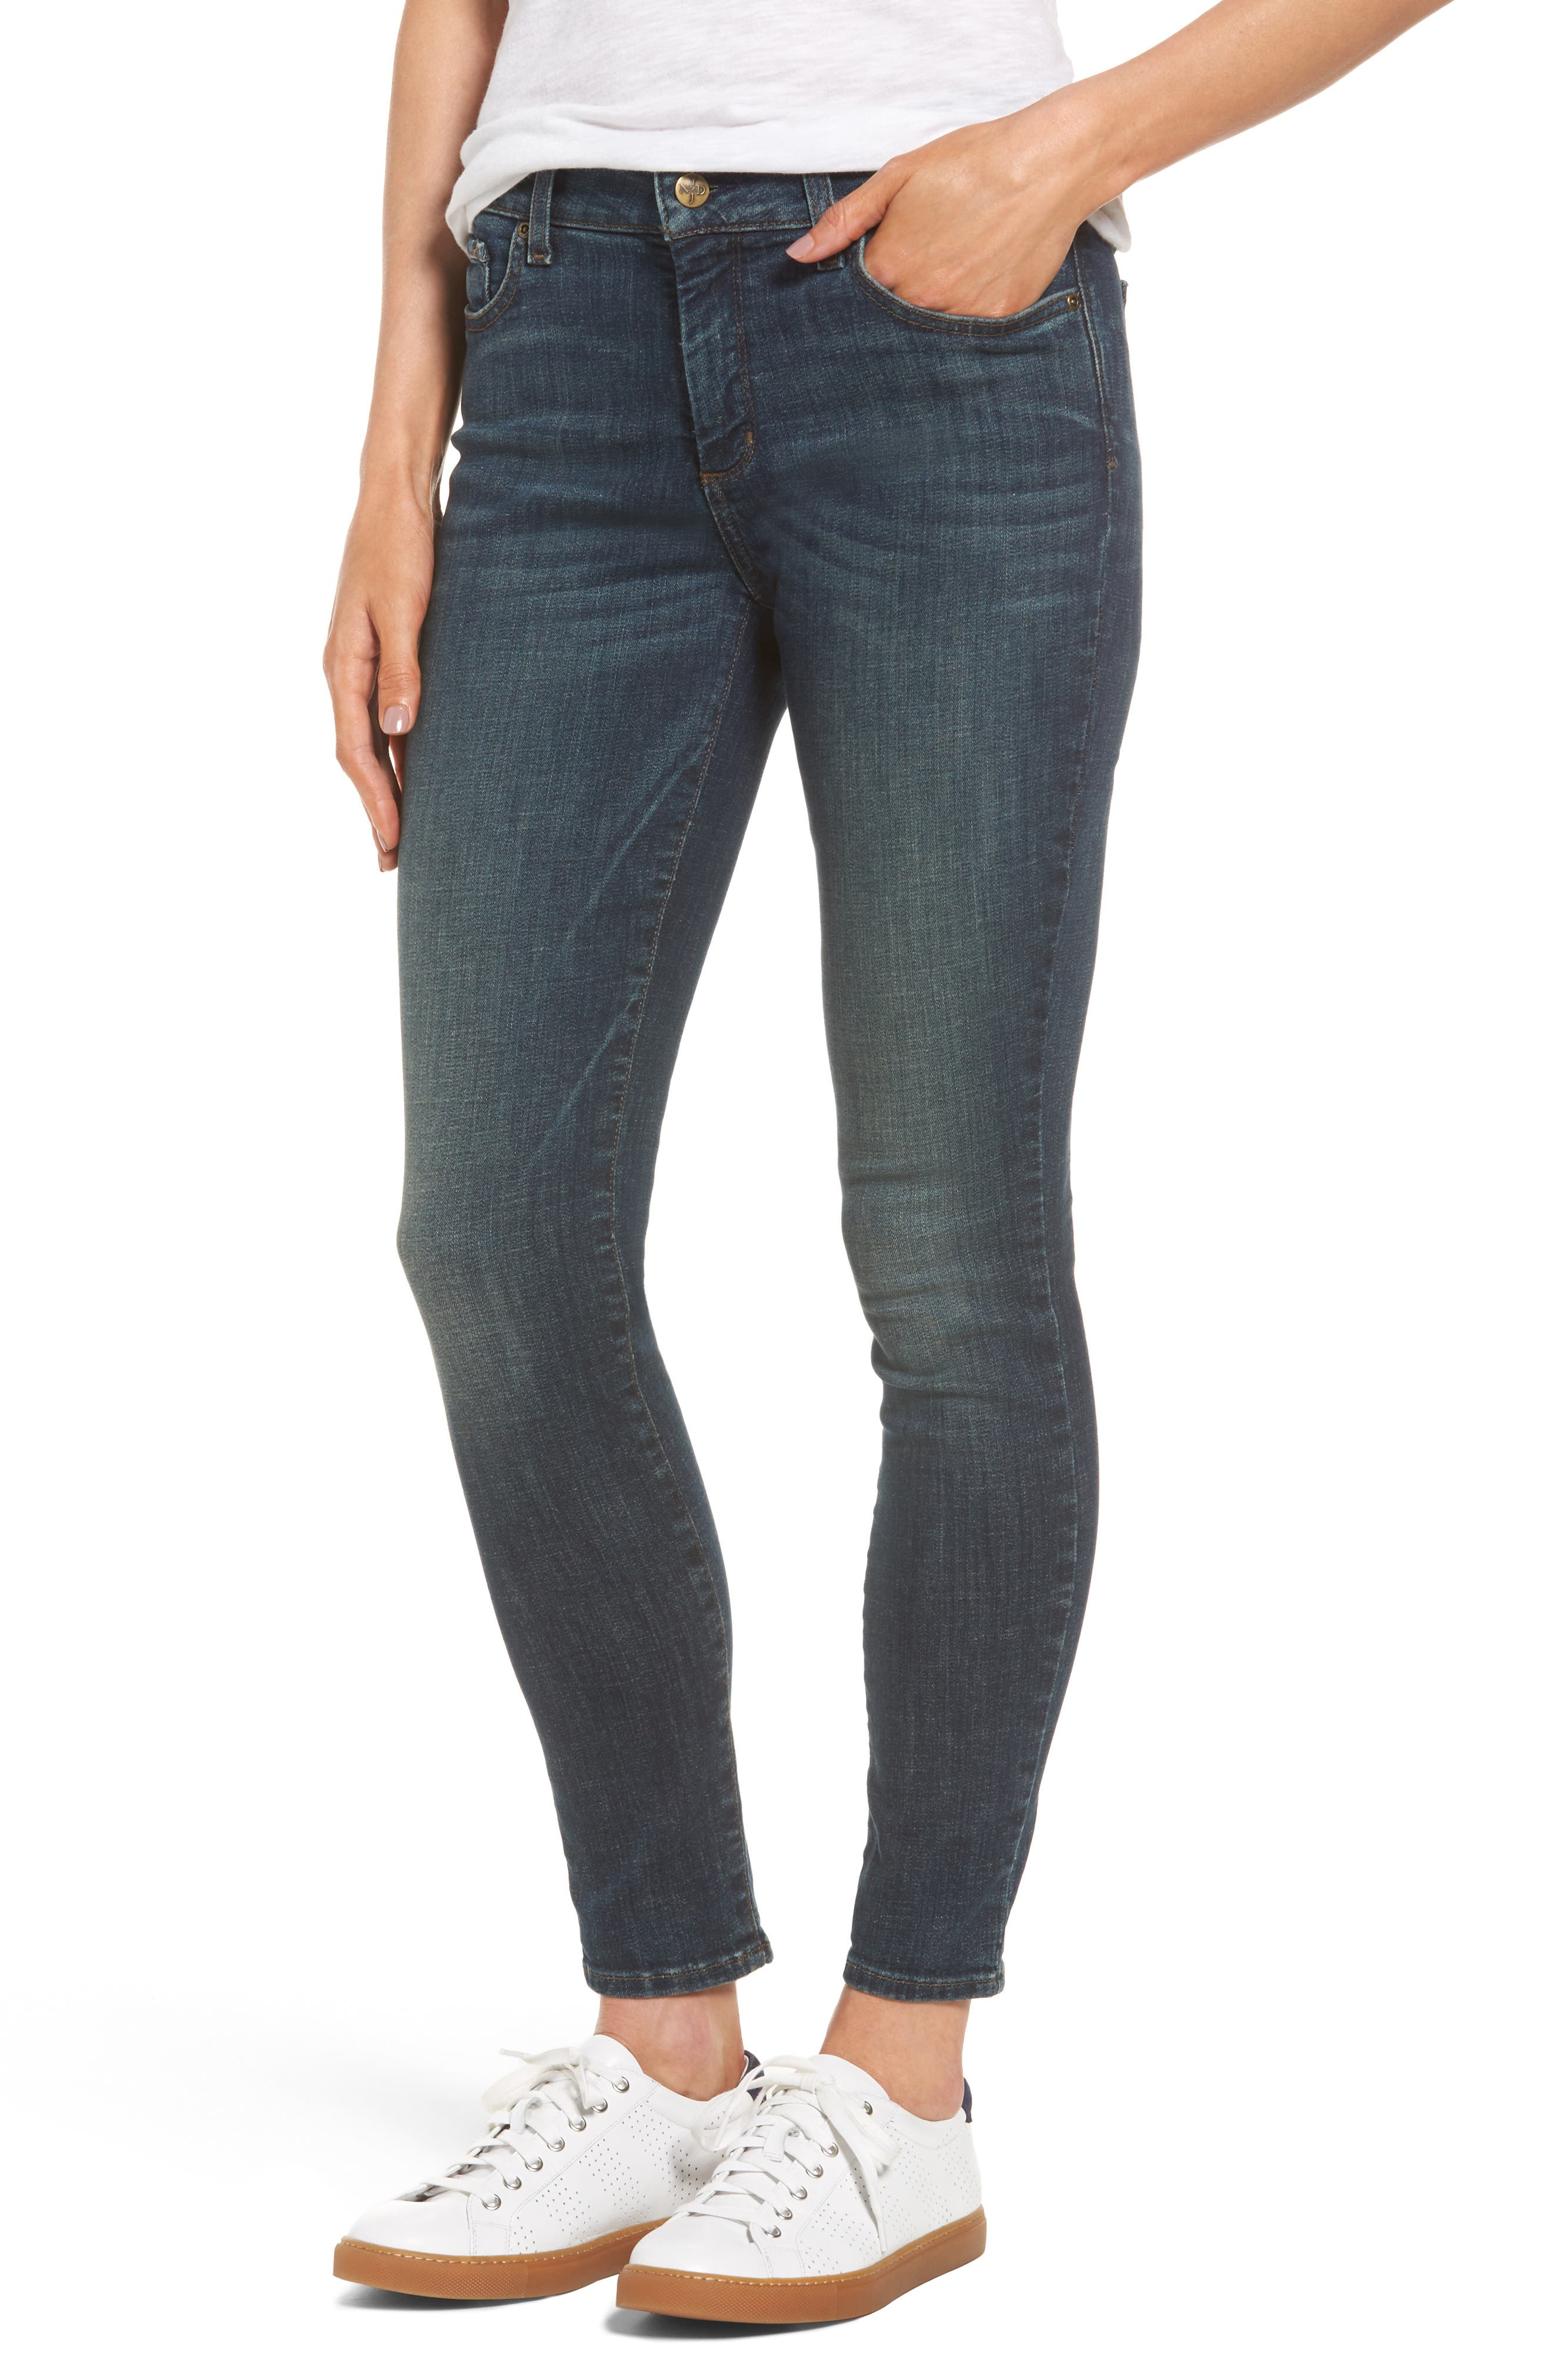 Ami Stretch Skinny Jeans,                         Main,                         color, 420